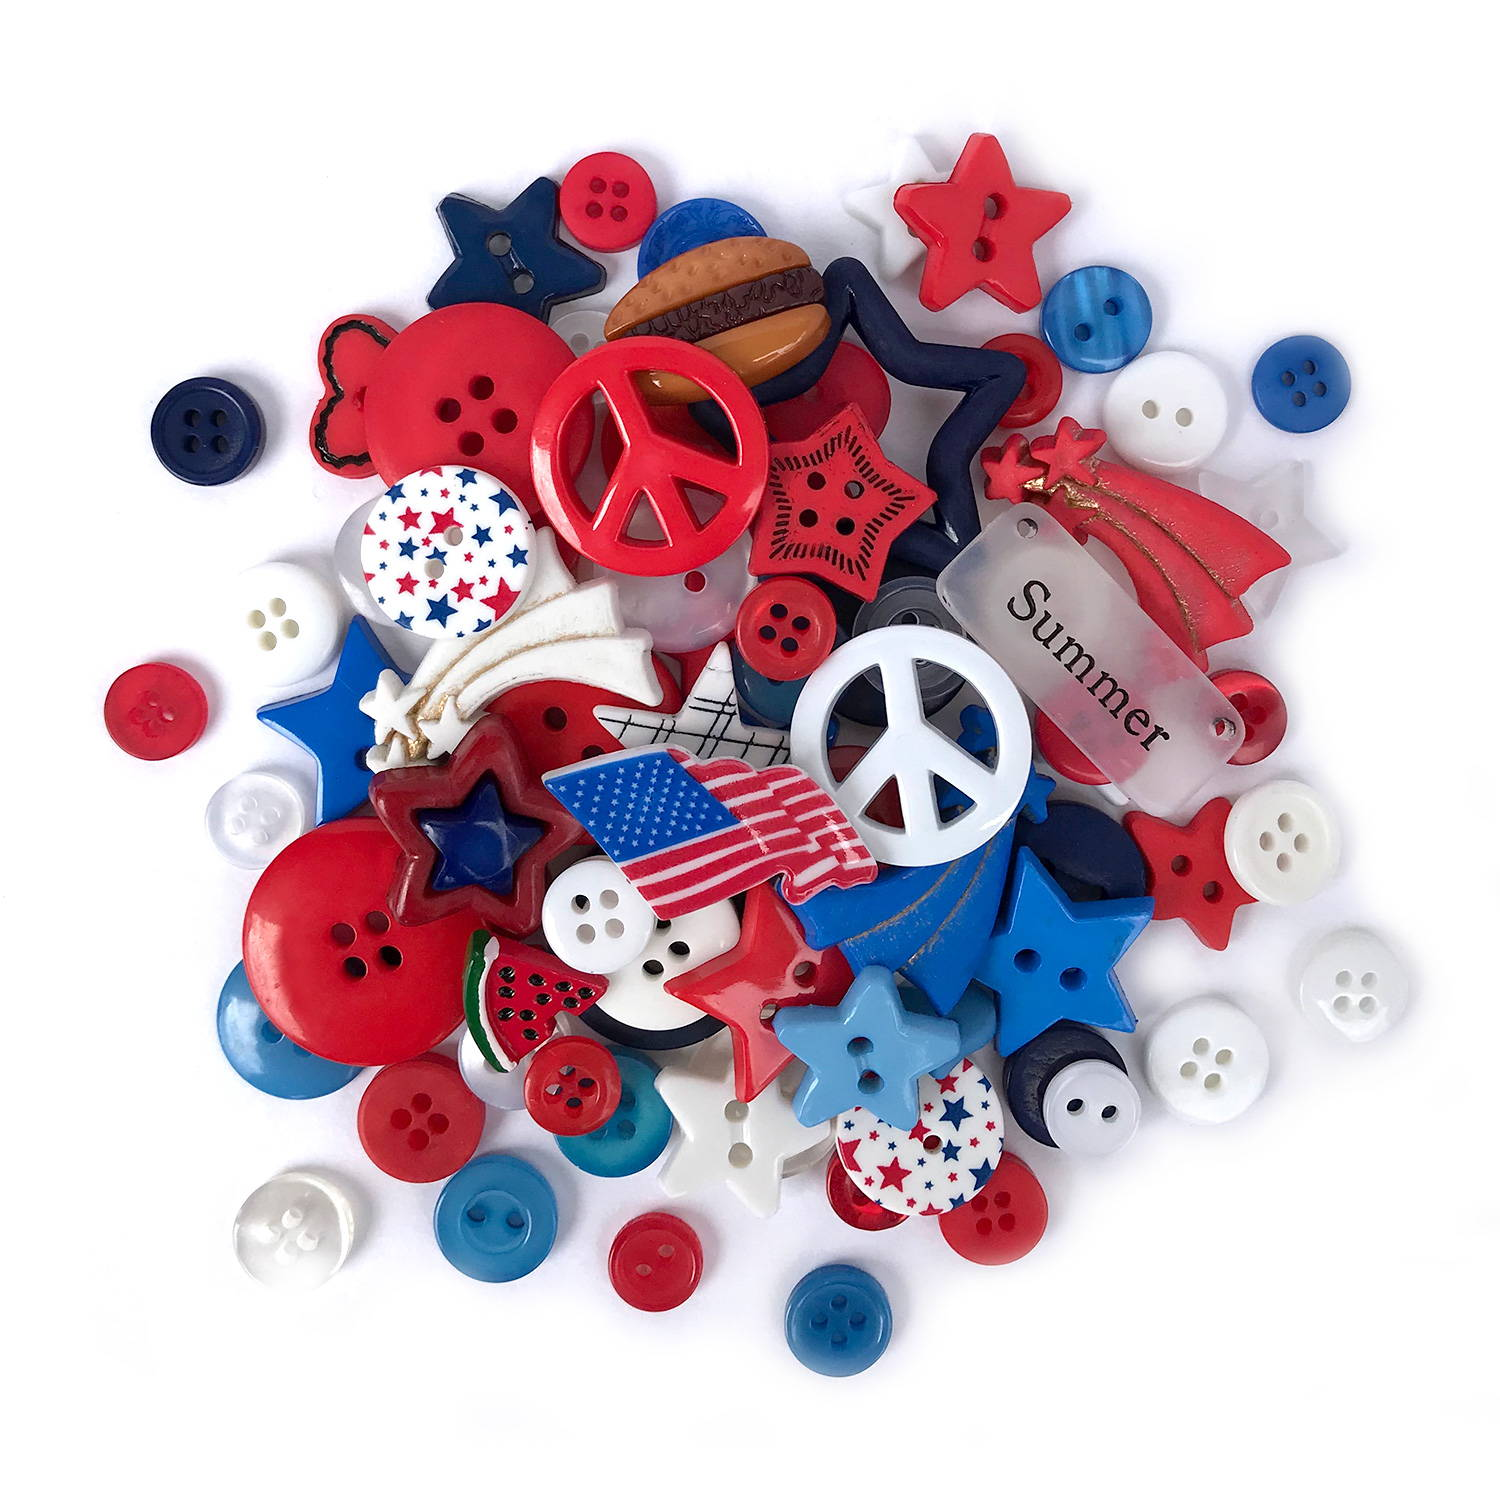 Craft Buttons For Sale - Buy Christmas Lights Large Super Value Pack